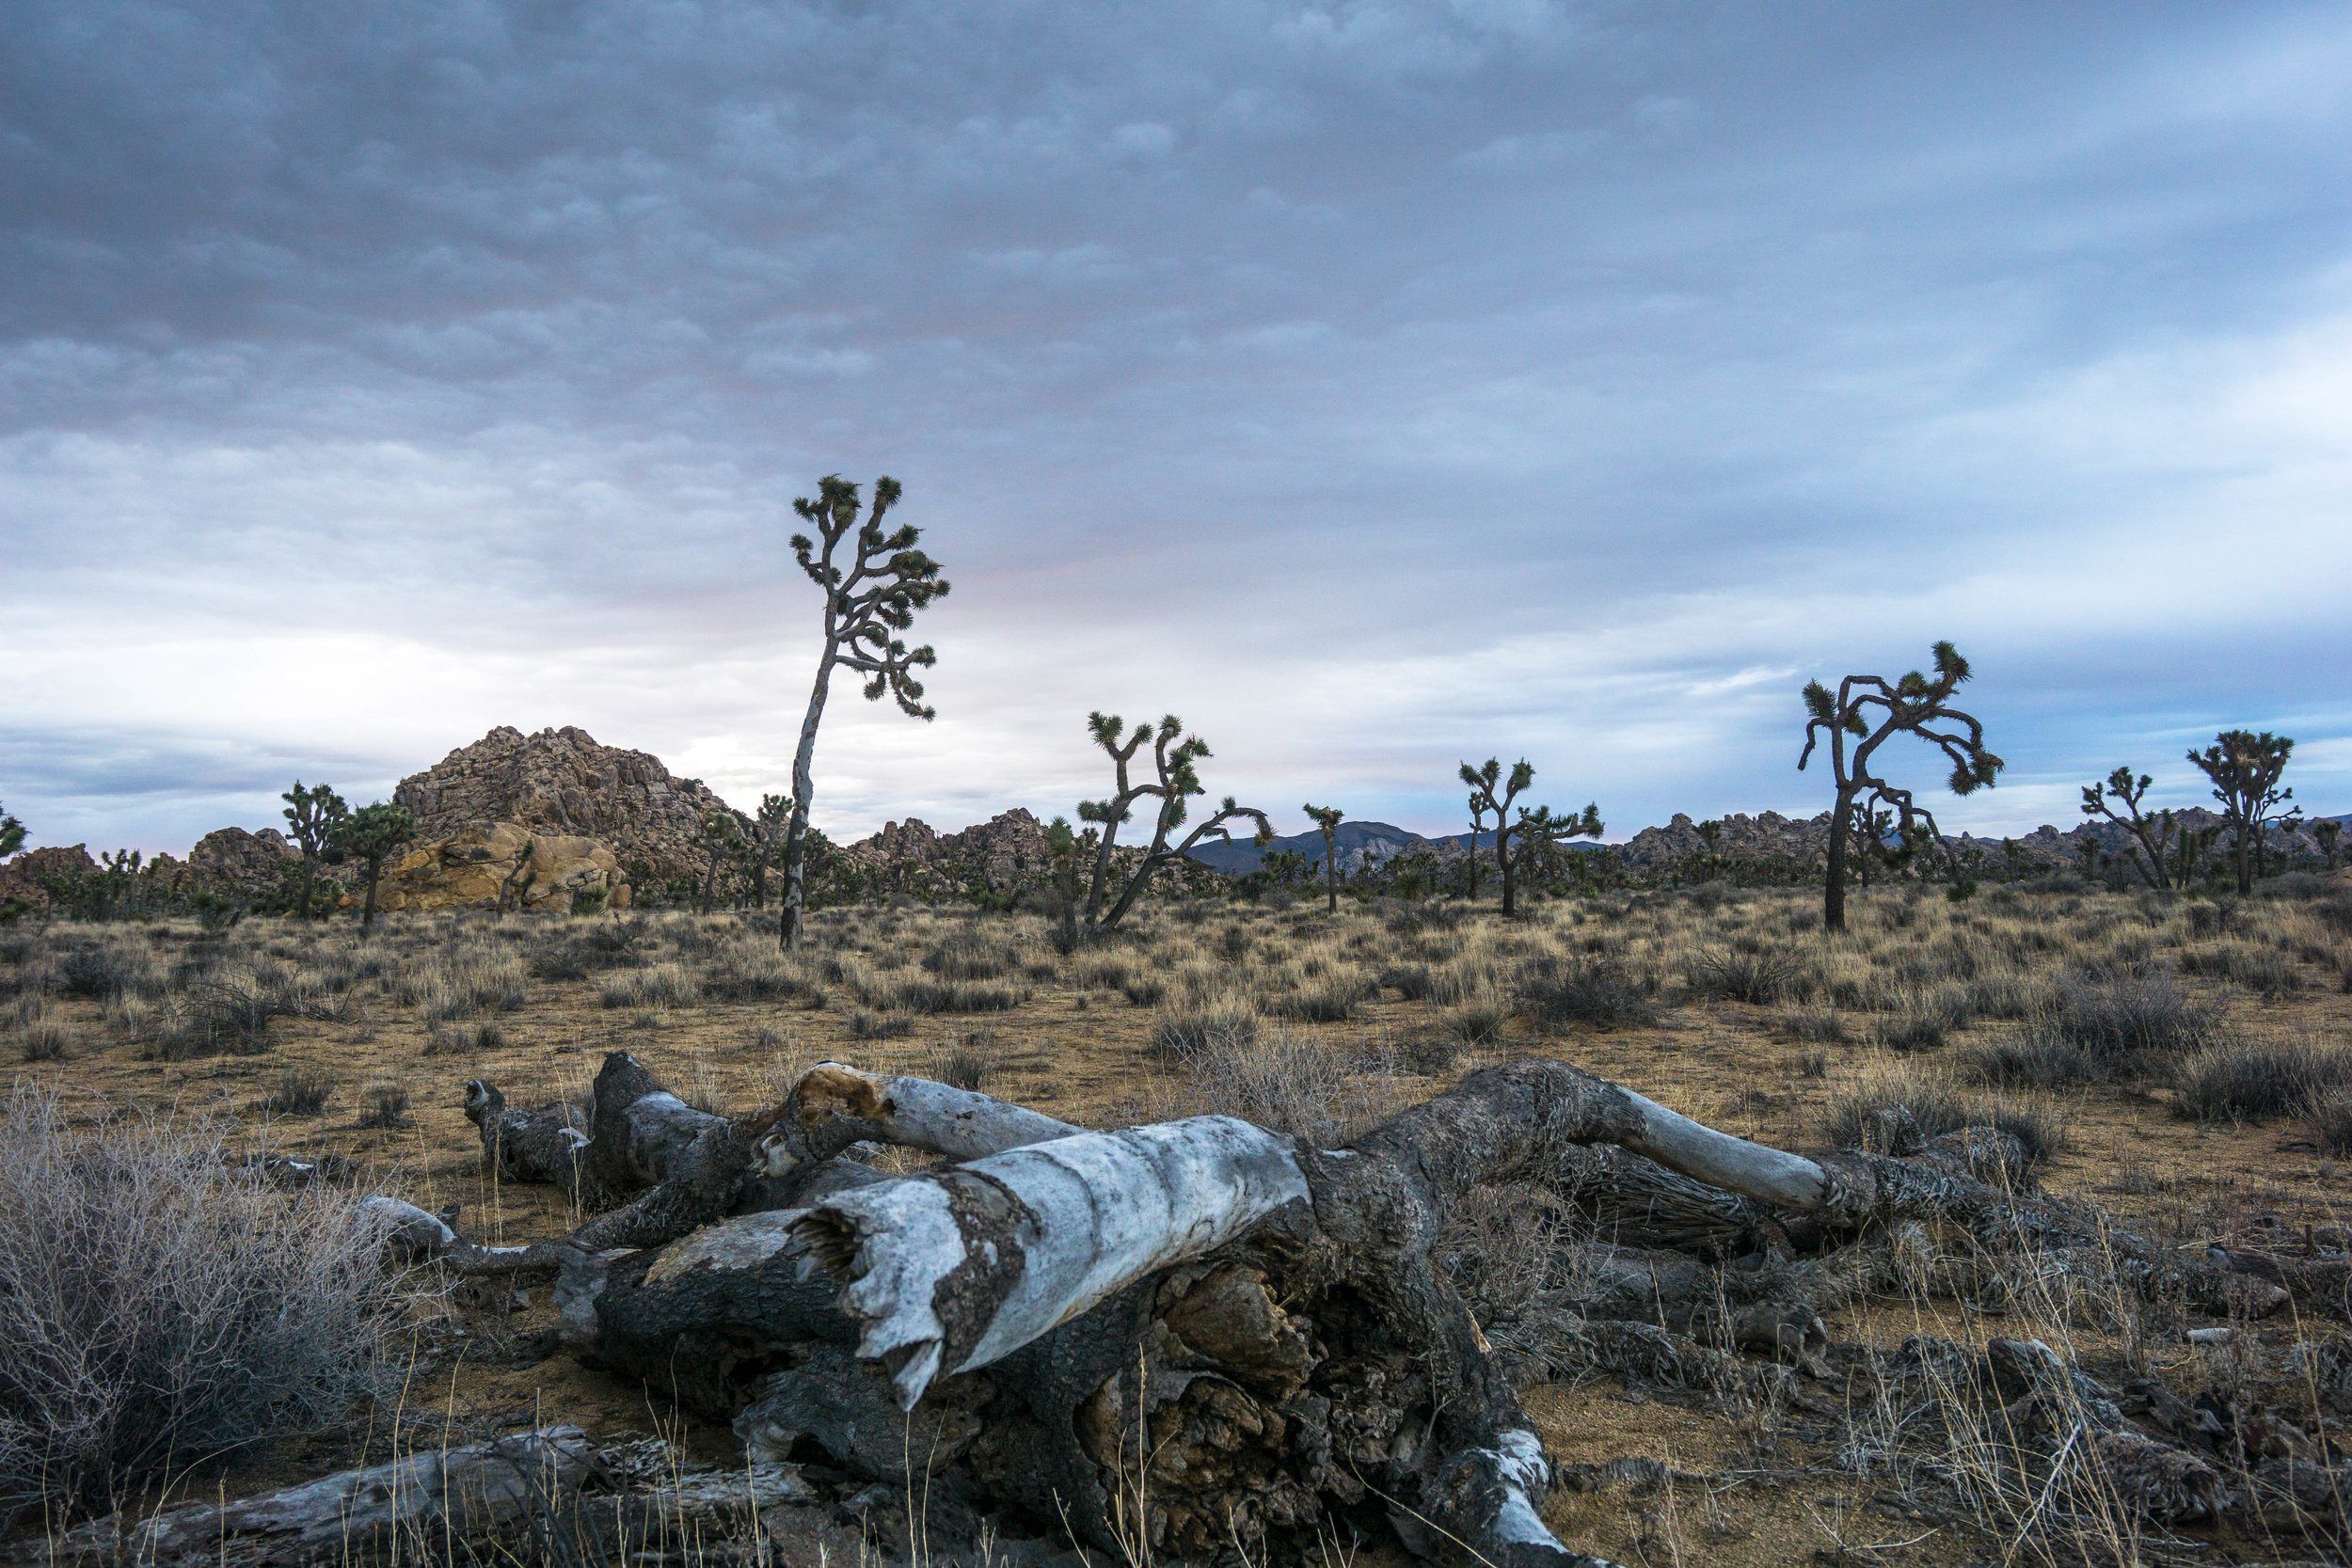 A fallen Joshua Tree rests among a forest of old friends. A small reminder that nothing is permanent.